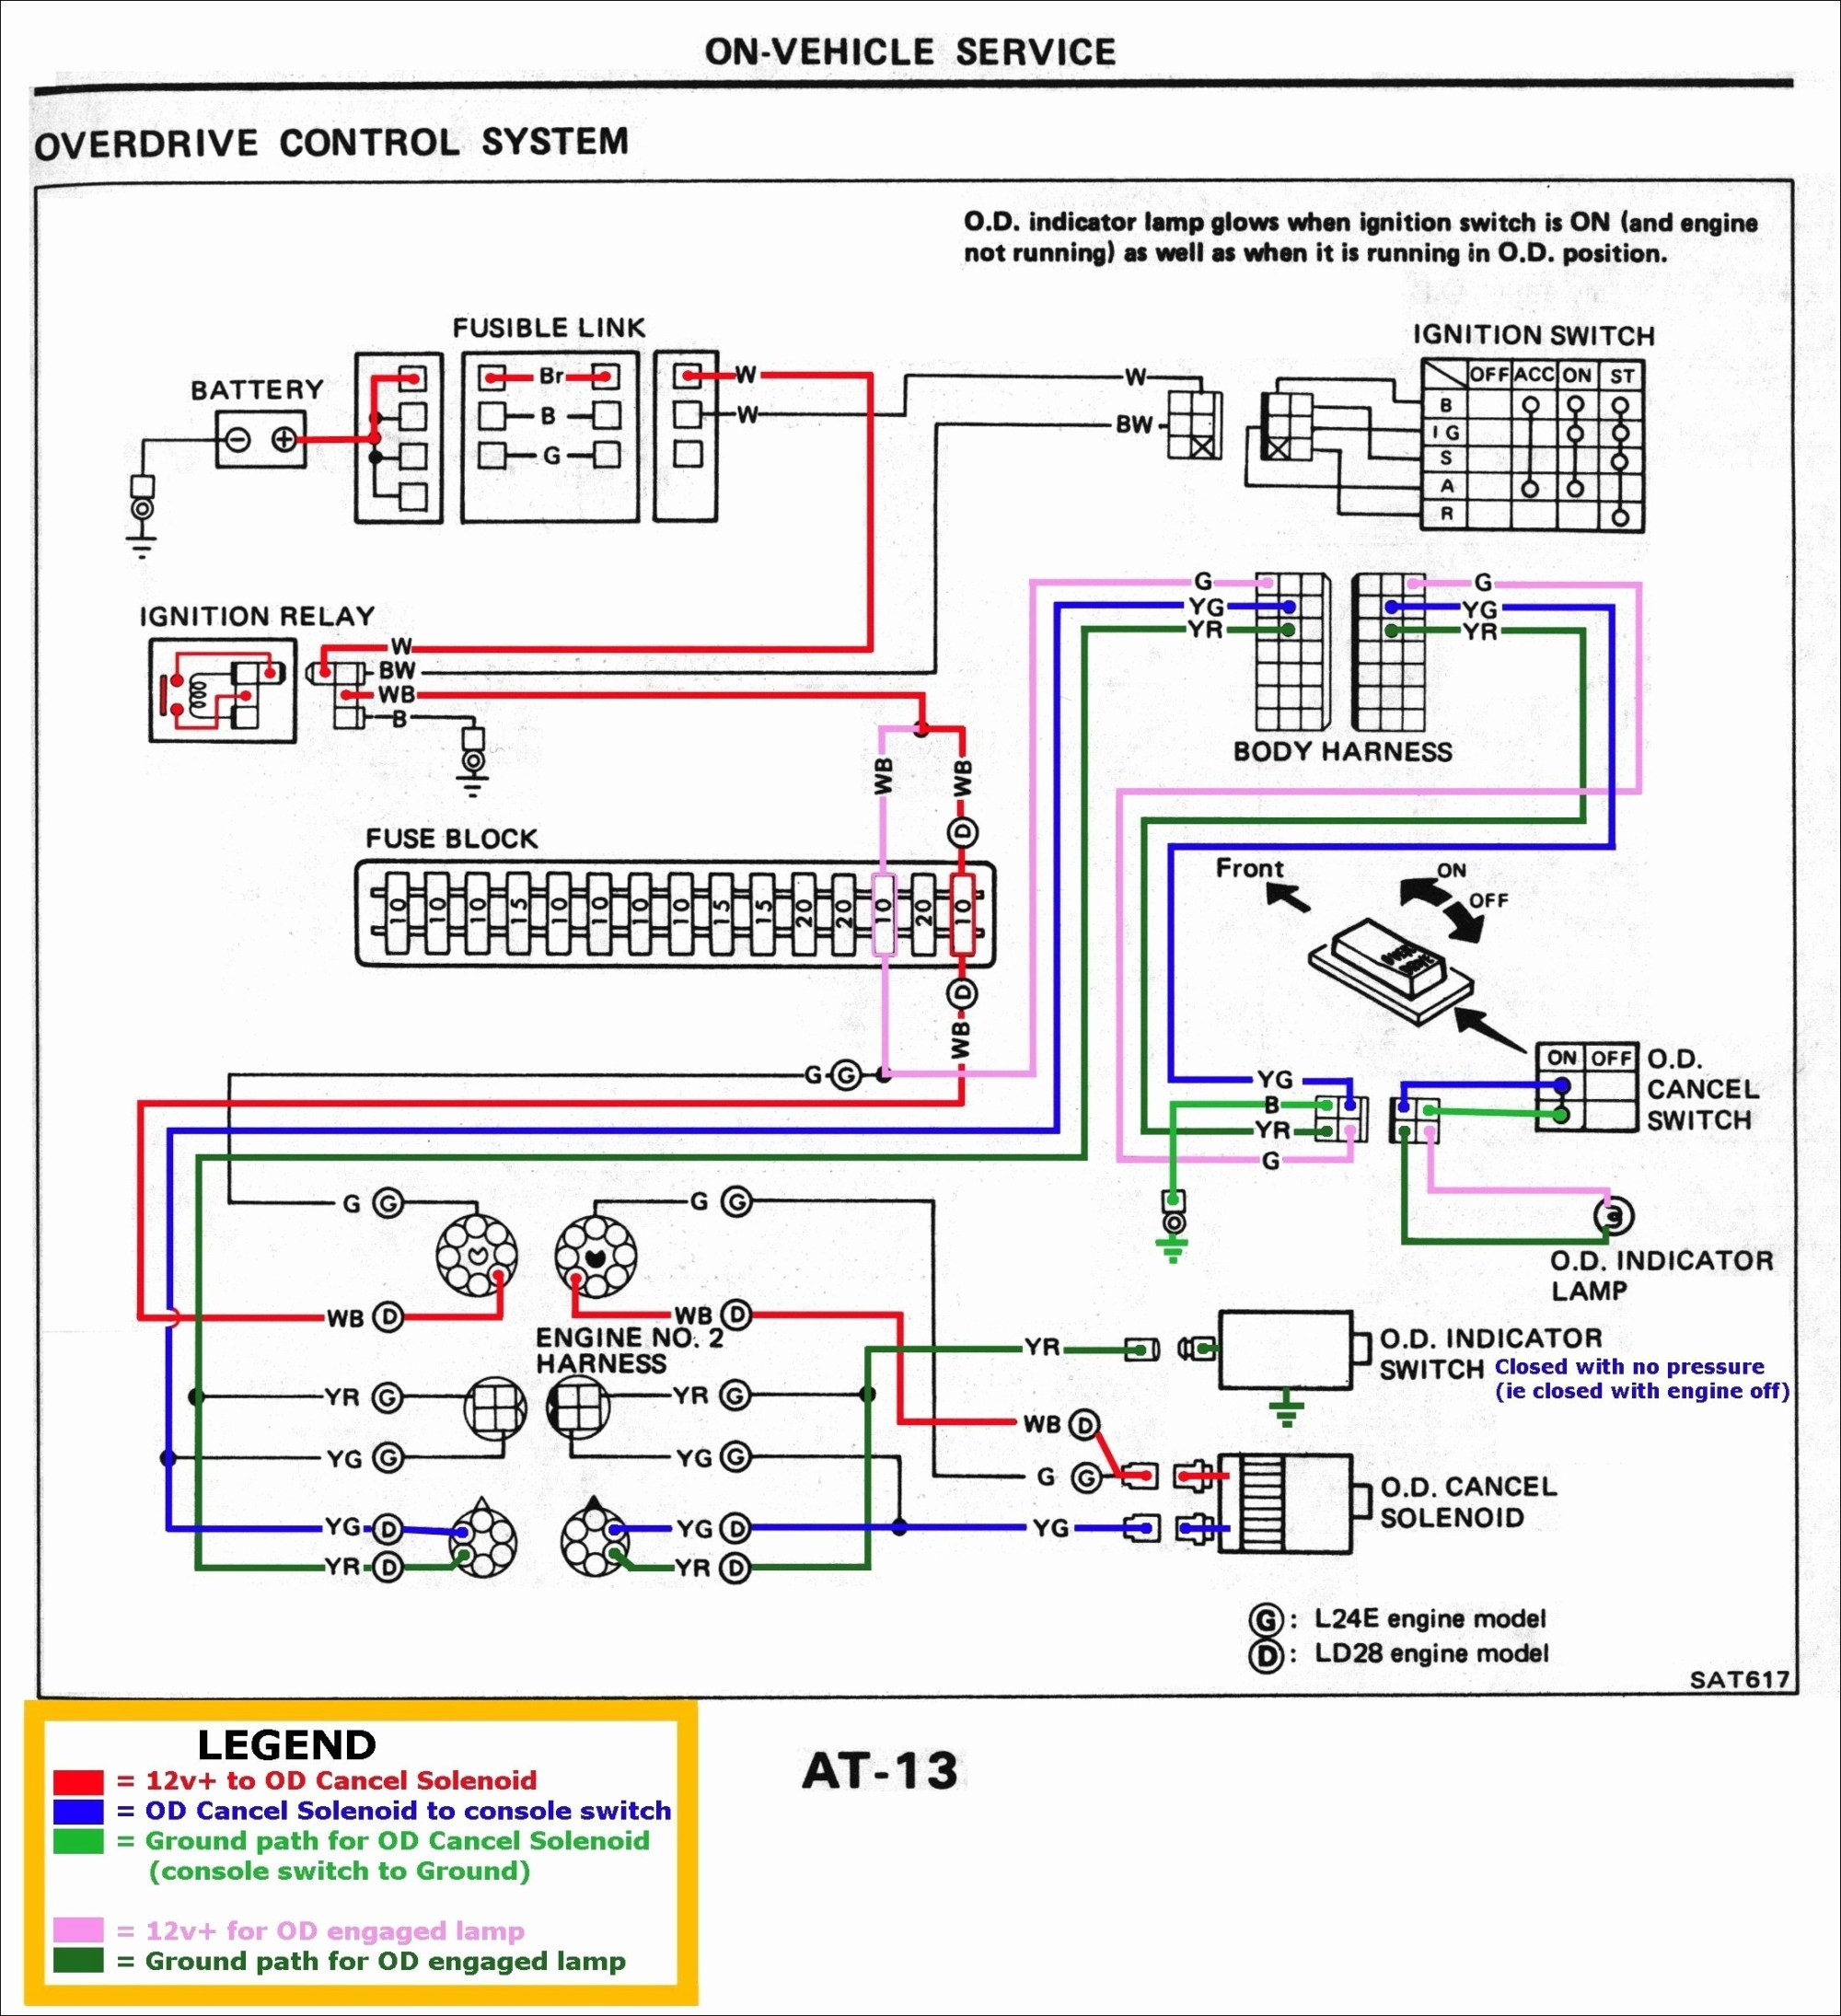 hight resolution of 1998 oldsmobile wiring diagram wiring diagram toolbox oldsmobile 88 radio wiring diagram